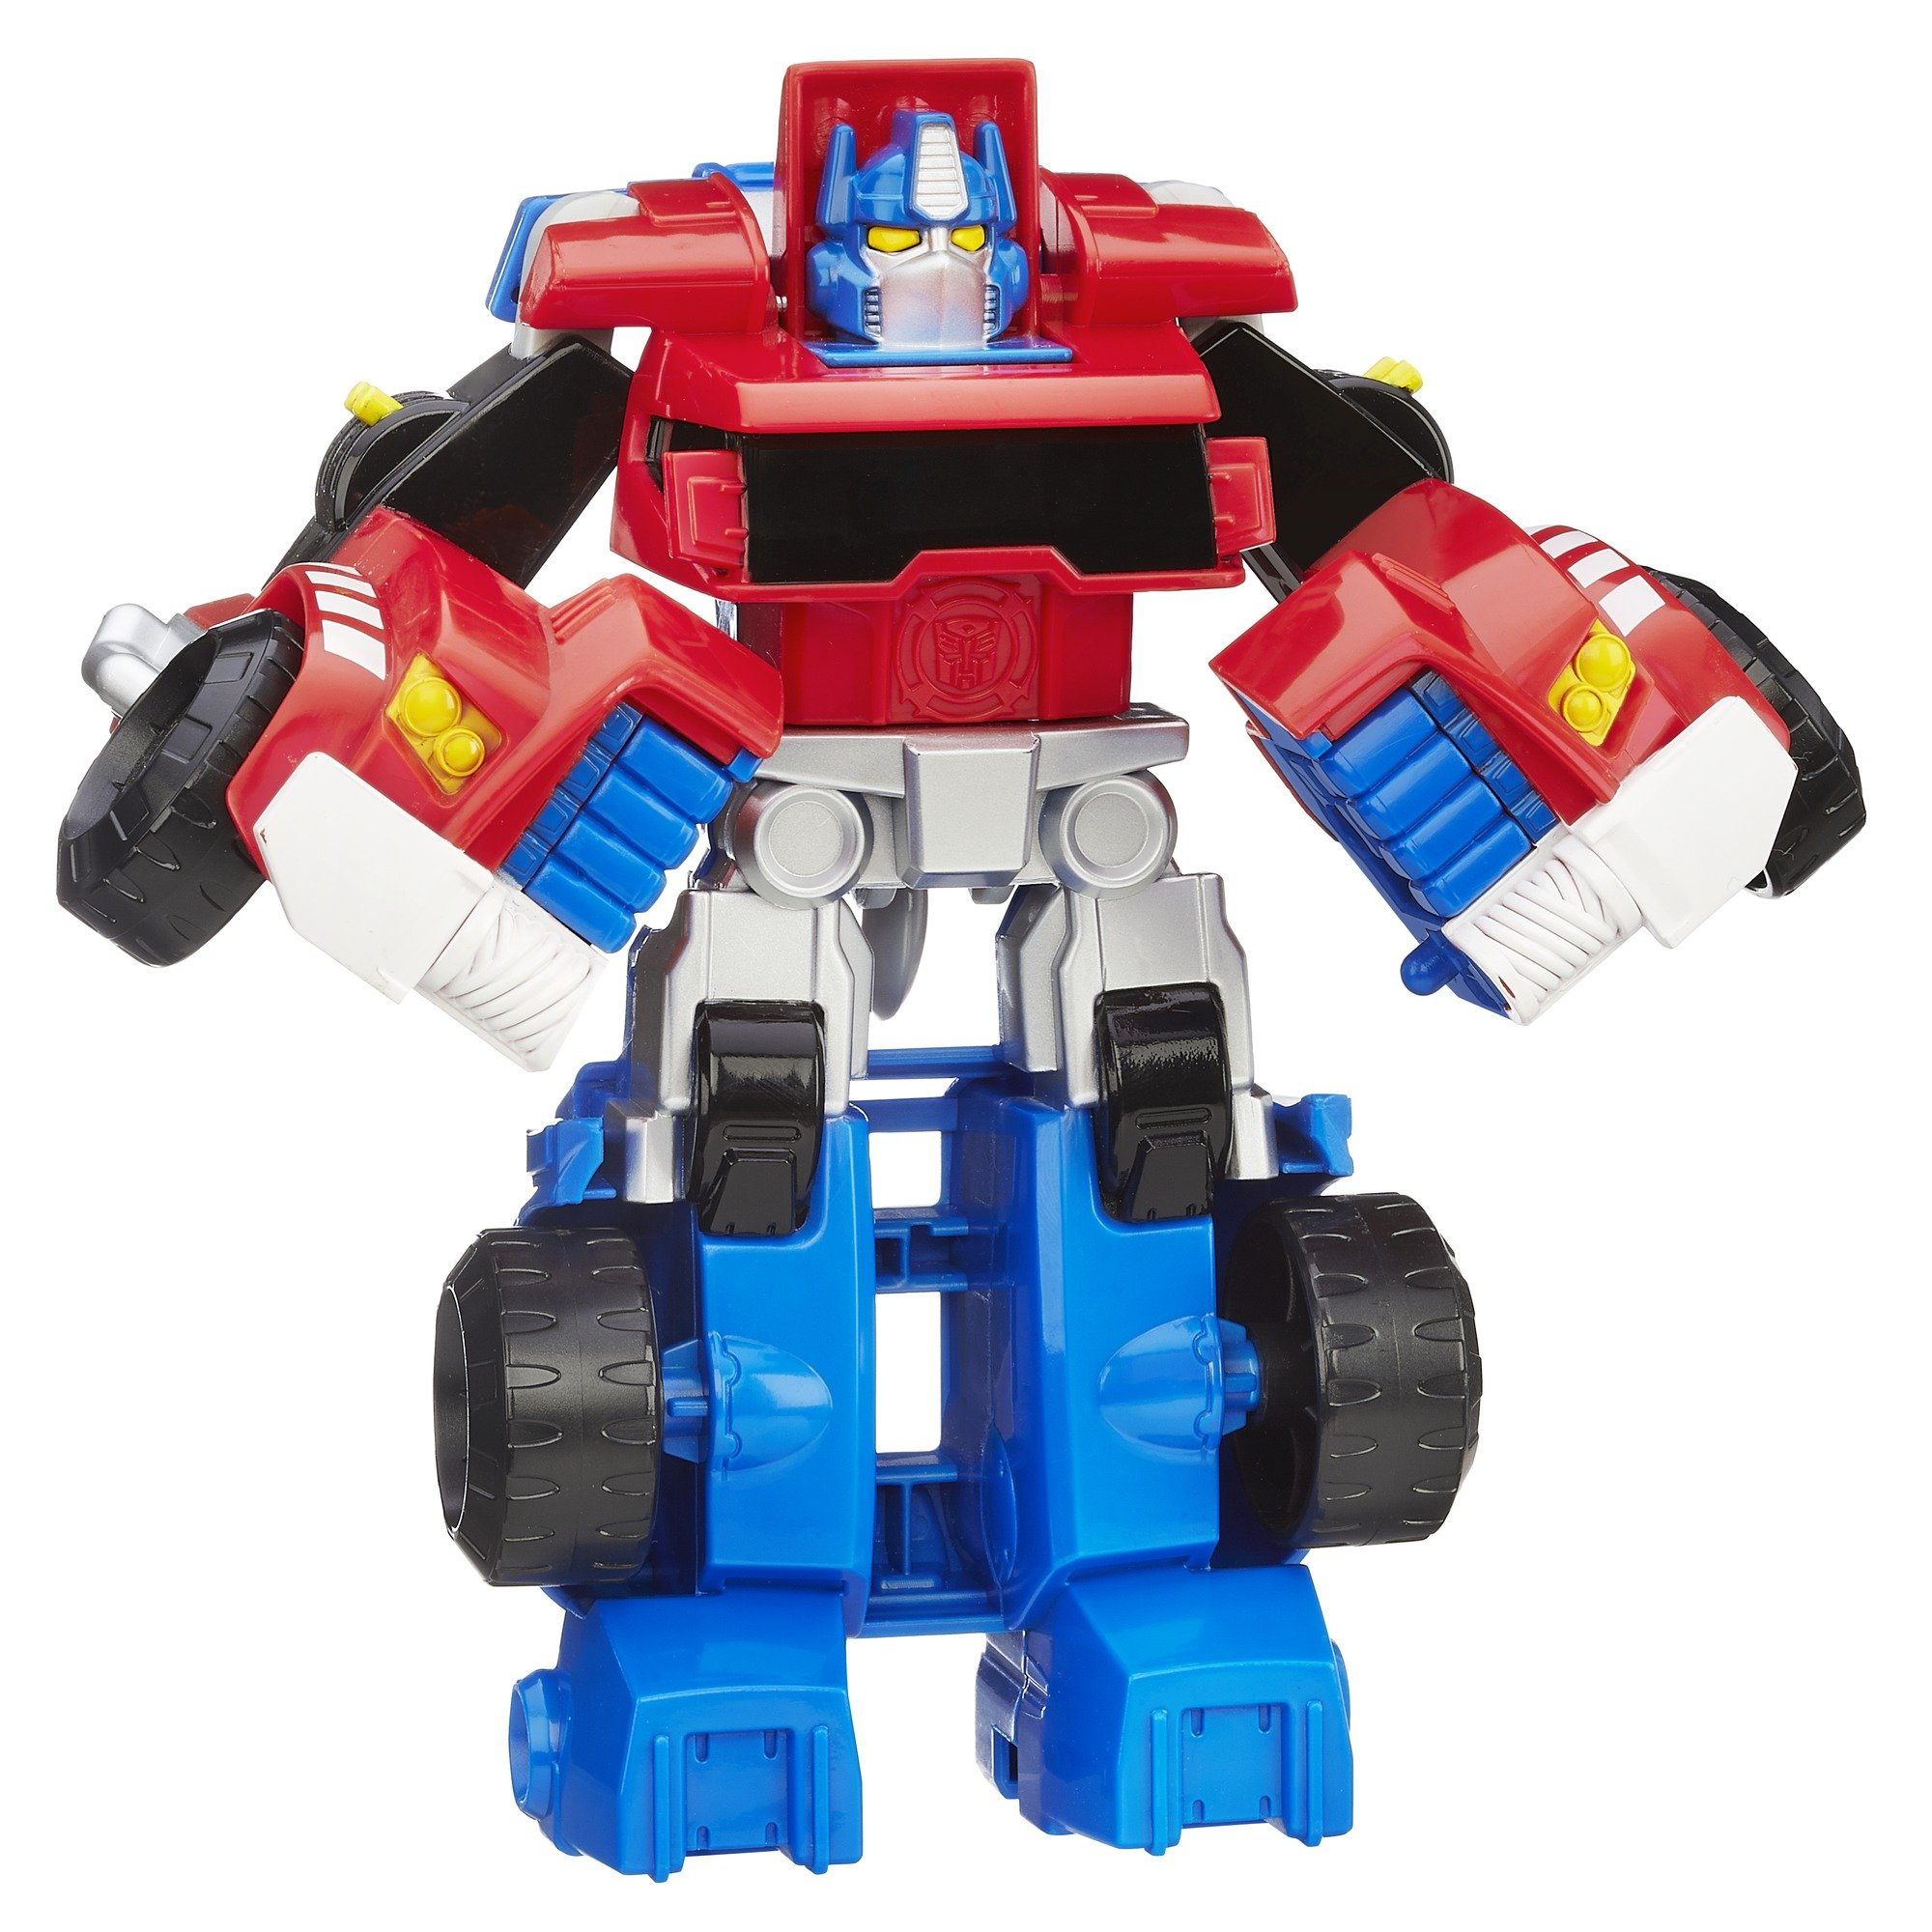 Playskool Heroes Transformers Rescue Bots Optimus Prime Action Figure, Ages 3-7 (Amazon Exclusive) by Playskool